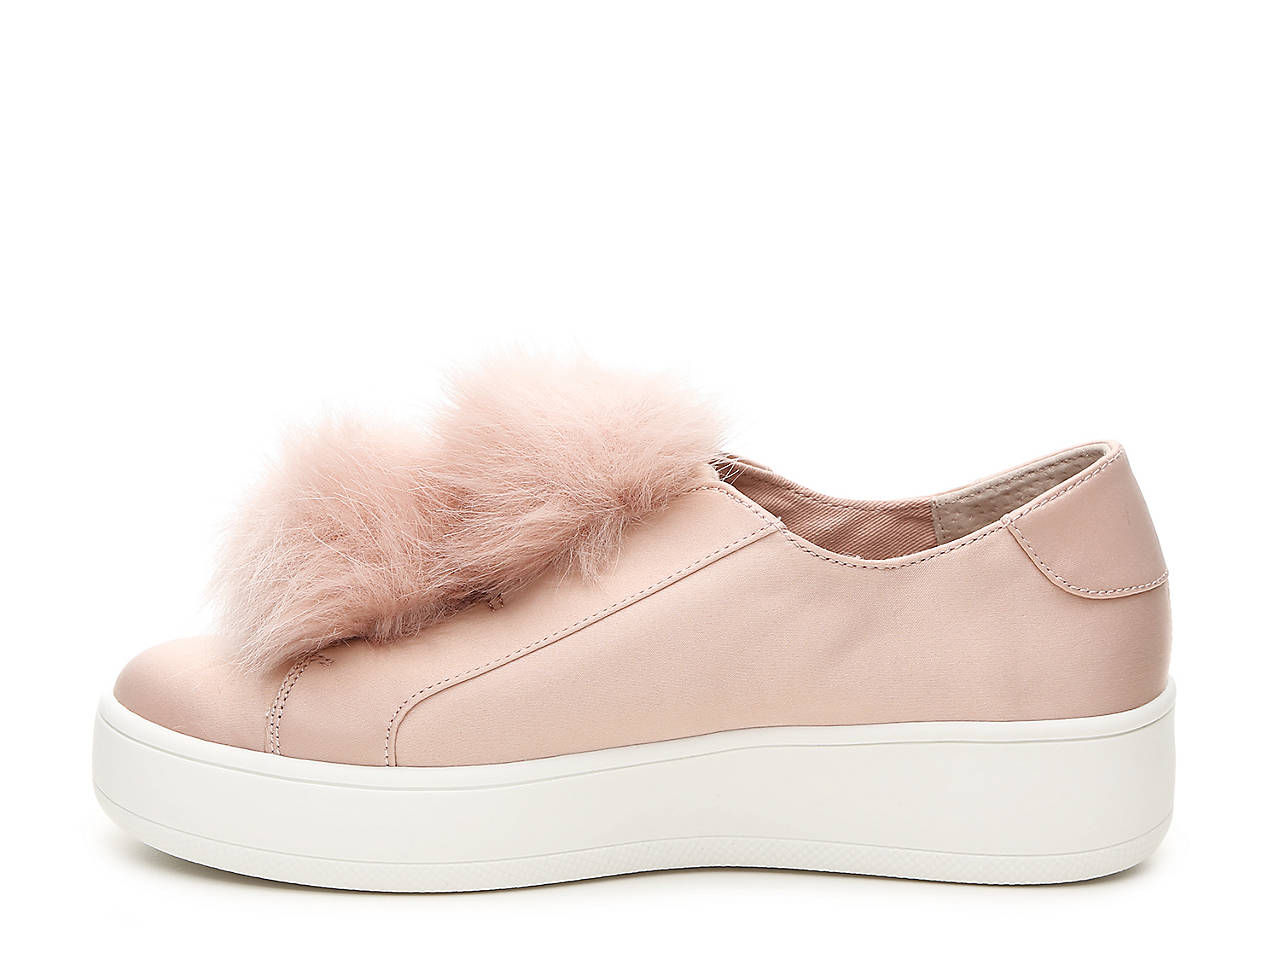 6a97bc176ade Steve Madden Furlie Wedge Slip-On Sneaker Women s Shoes